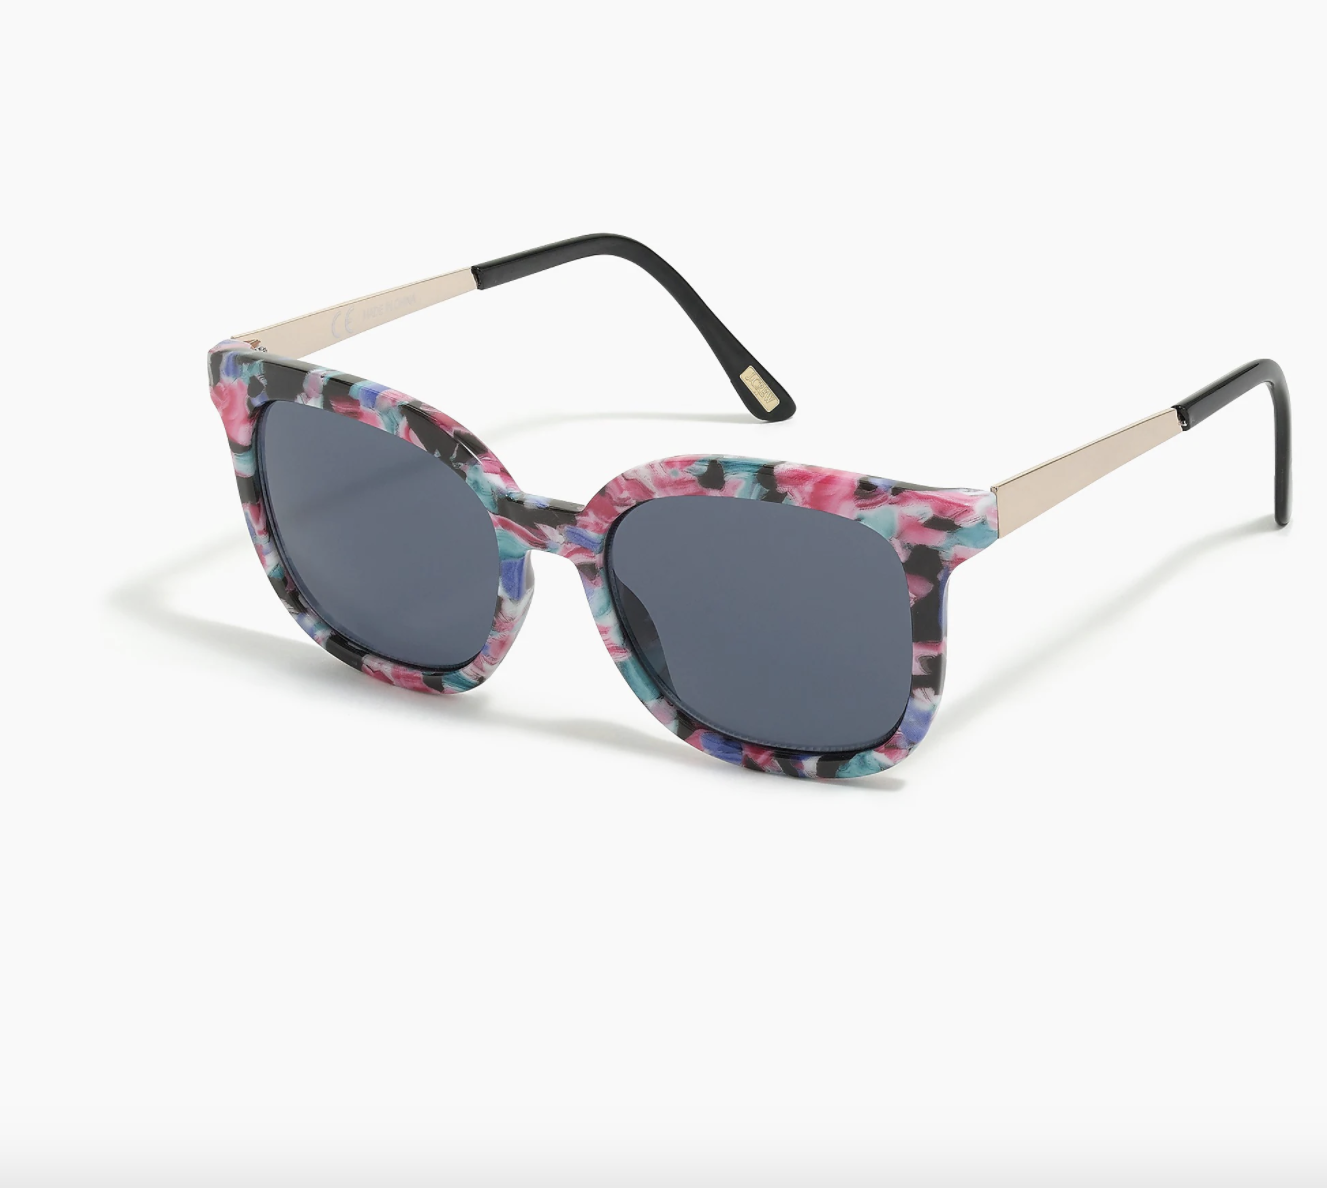 the sunglasses, which are black with a floral pattern around the border